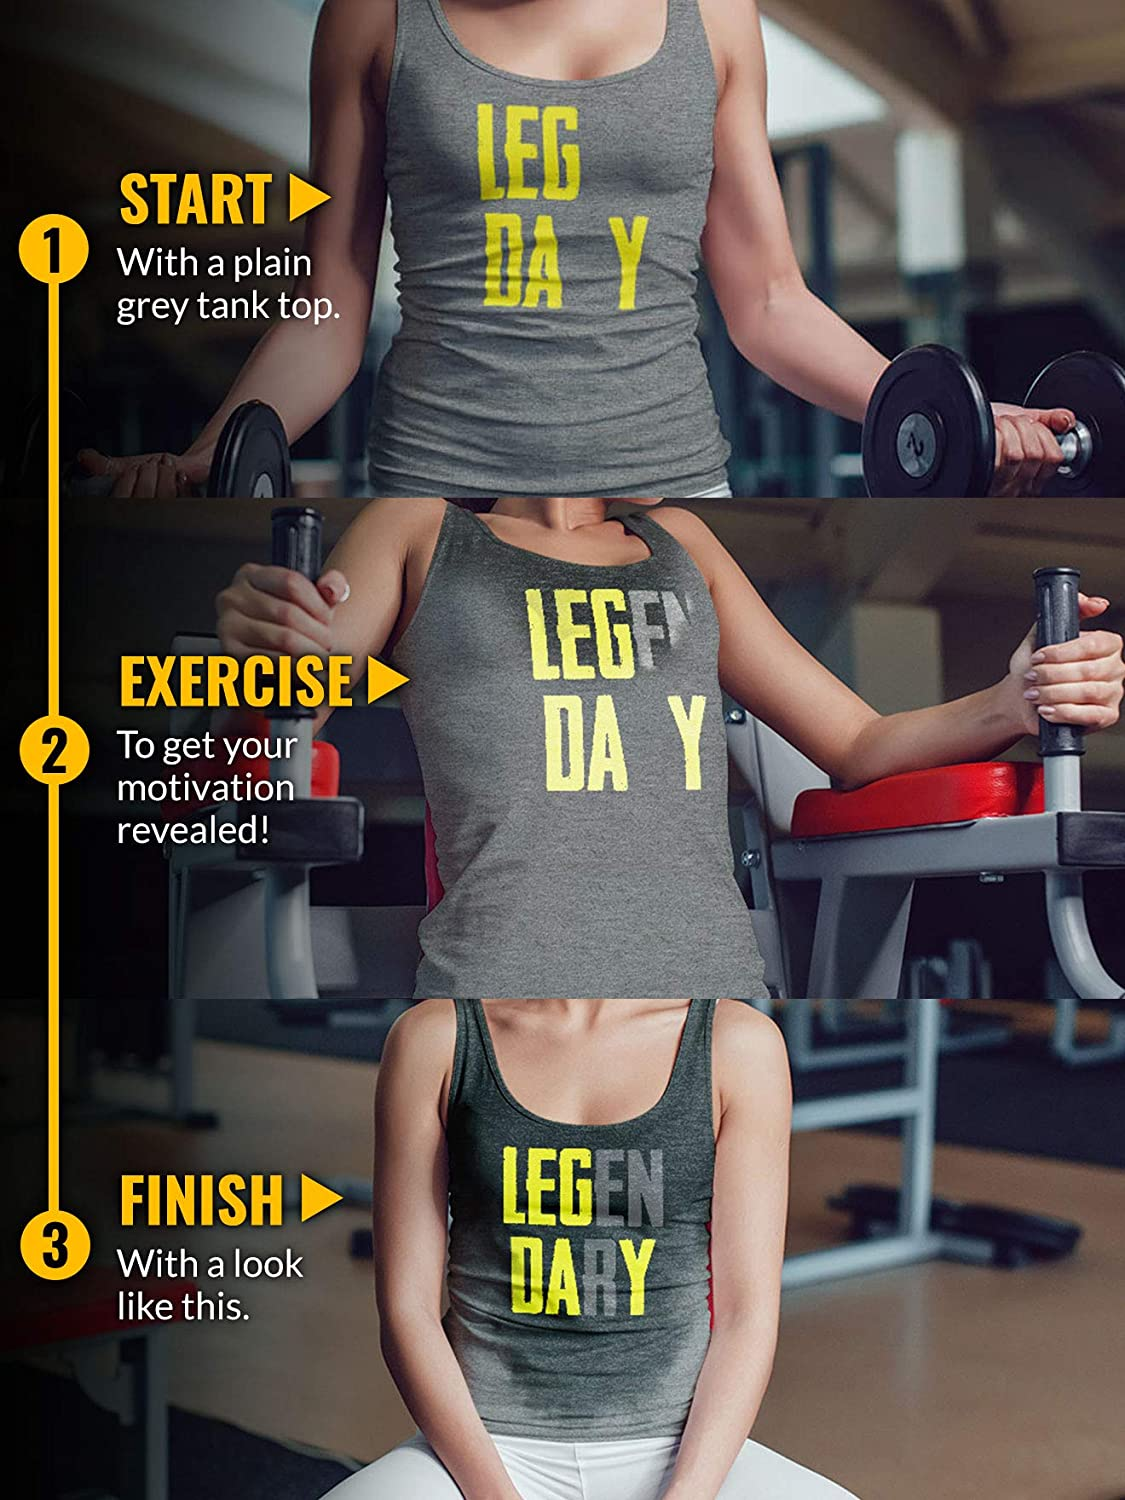 Legendary Leg Day Actizio Sweat Activated Funny Workout Womens Tank Top